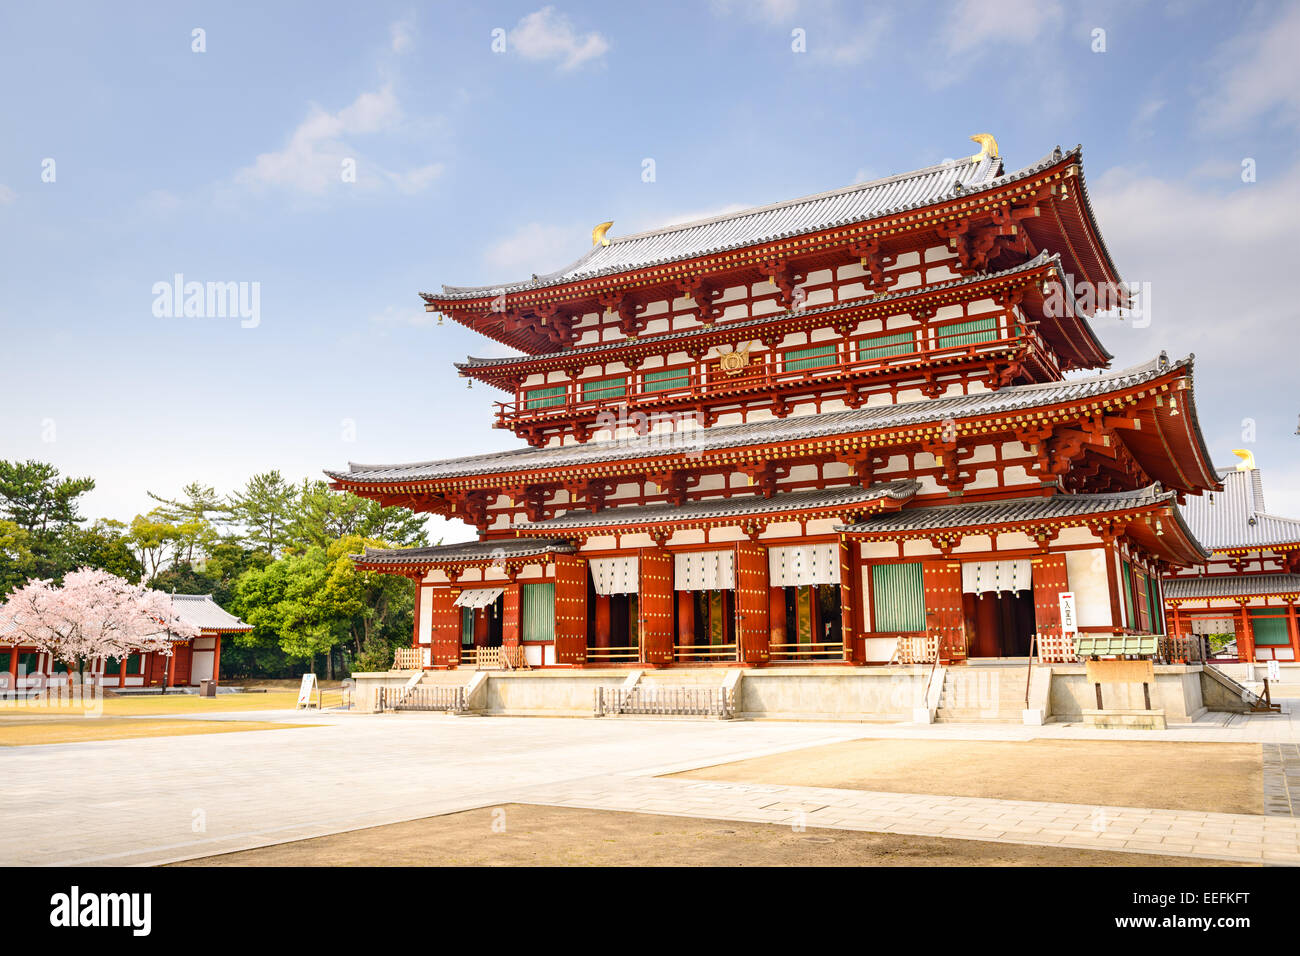 Nara, Japan at the Golden Hall of Yakushi-ji Temple with a hint of spring cherry blossoms. - Stock Image